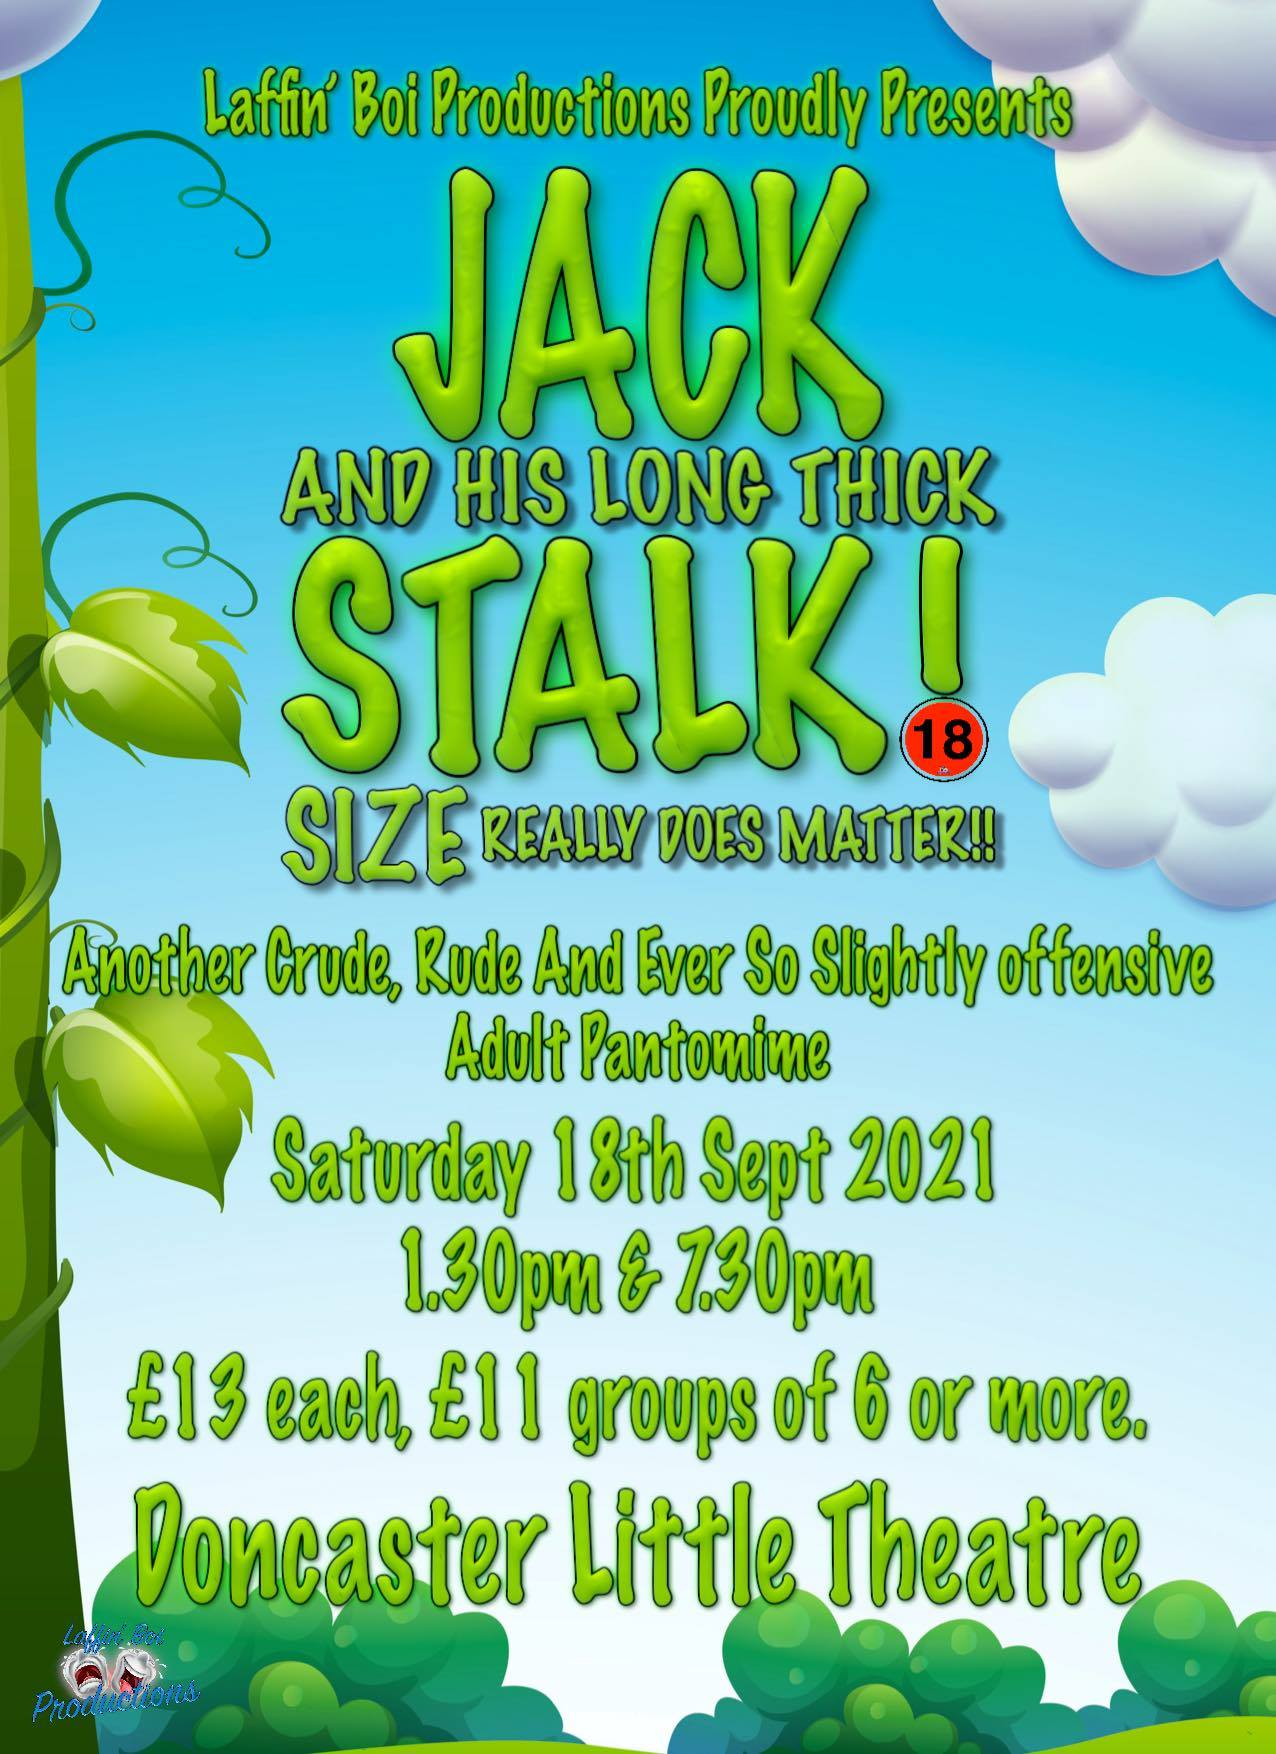 Jack And His Long Thick Stalk!